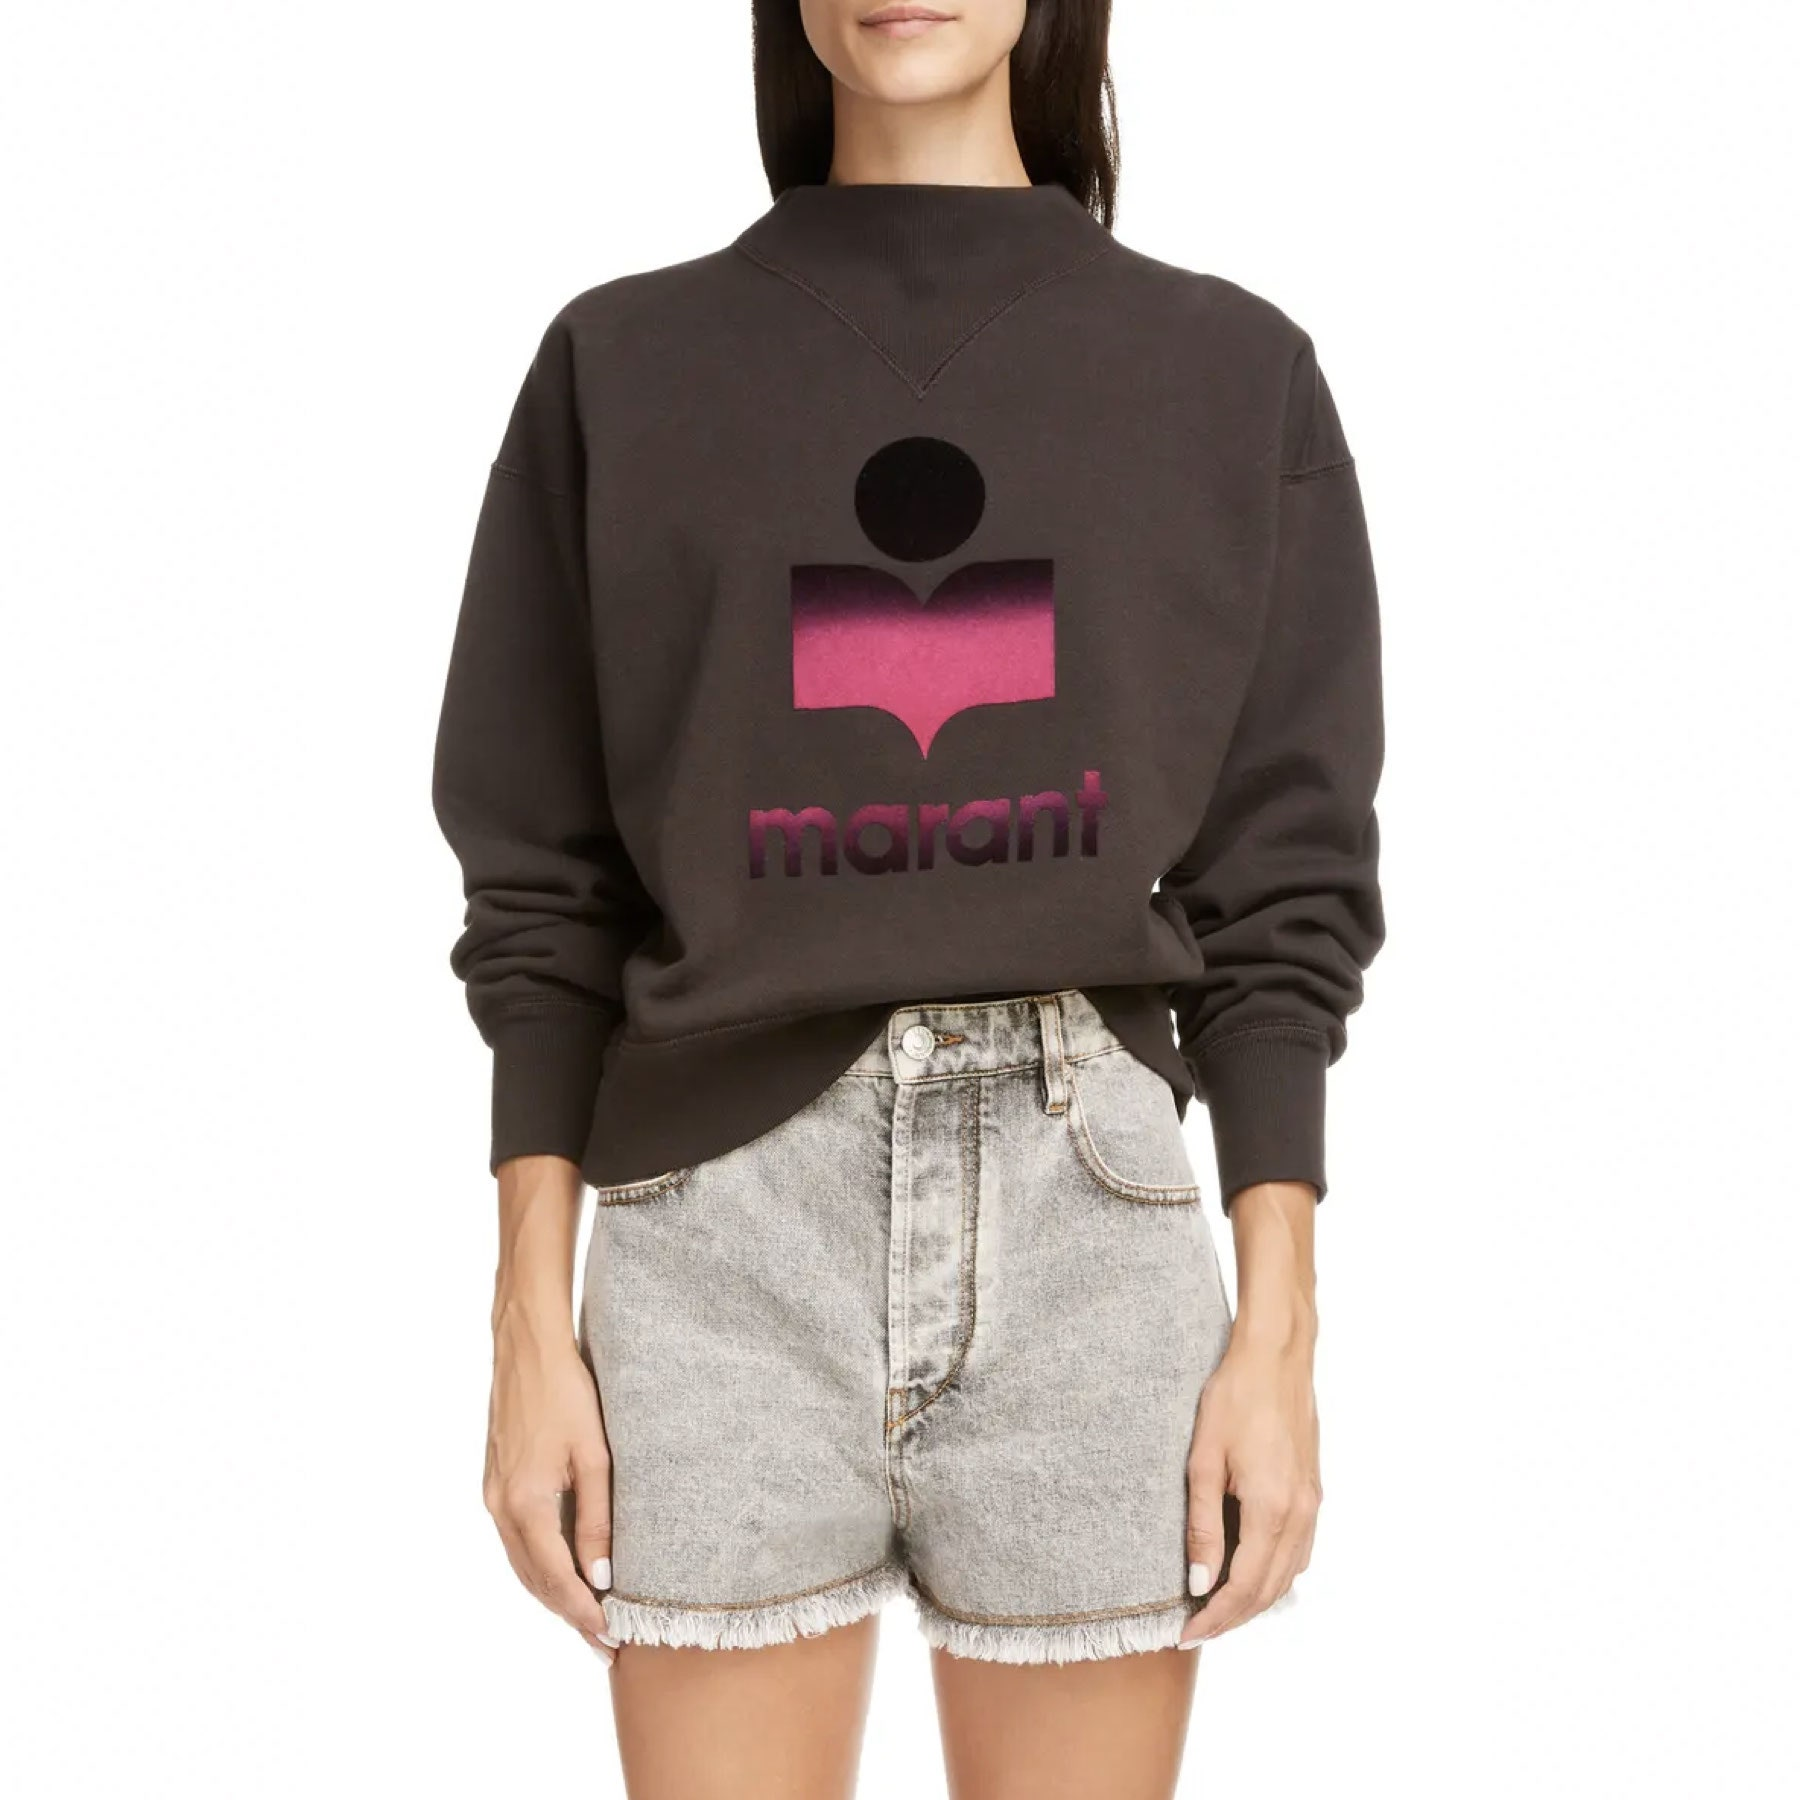 model wearing grey sweatshirt with pink and black logo